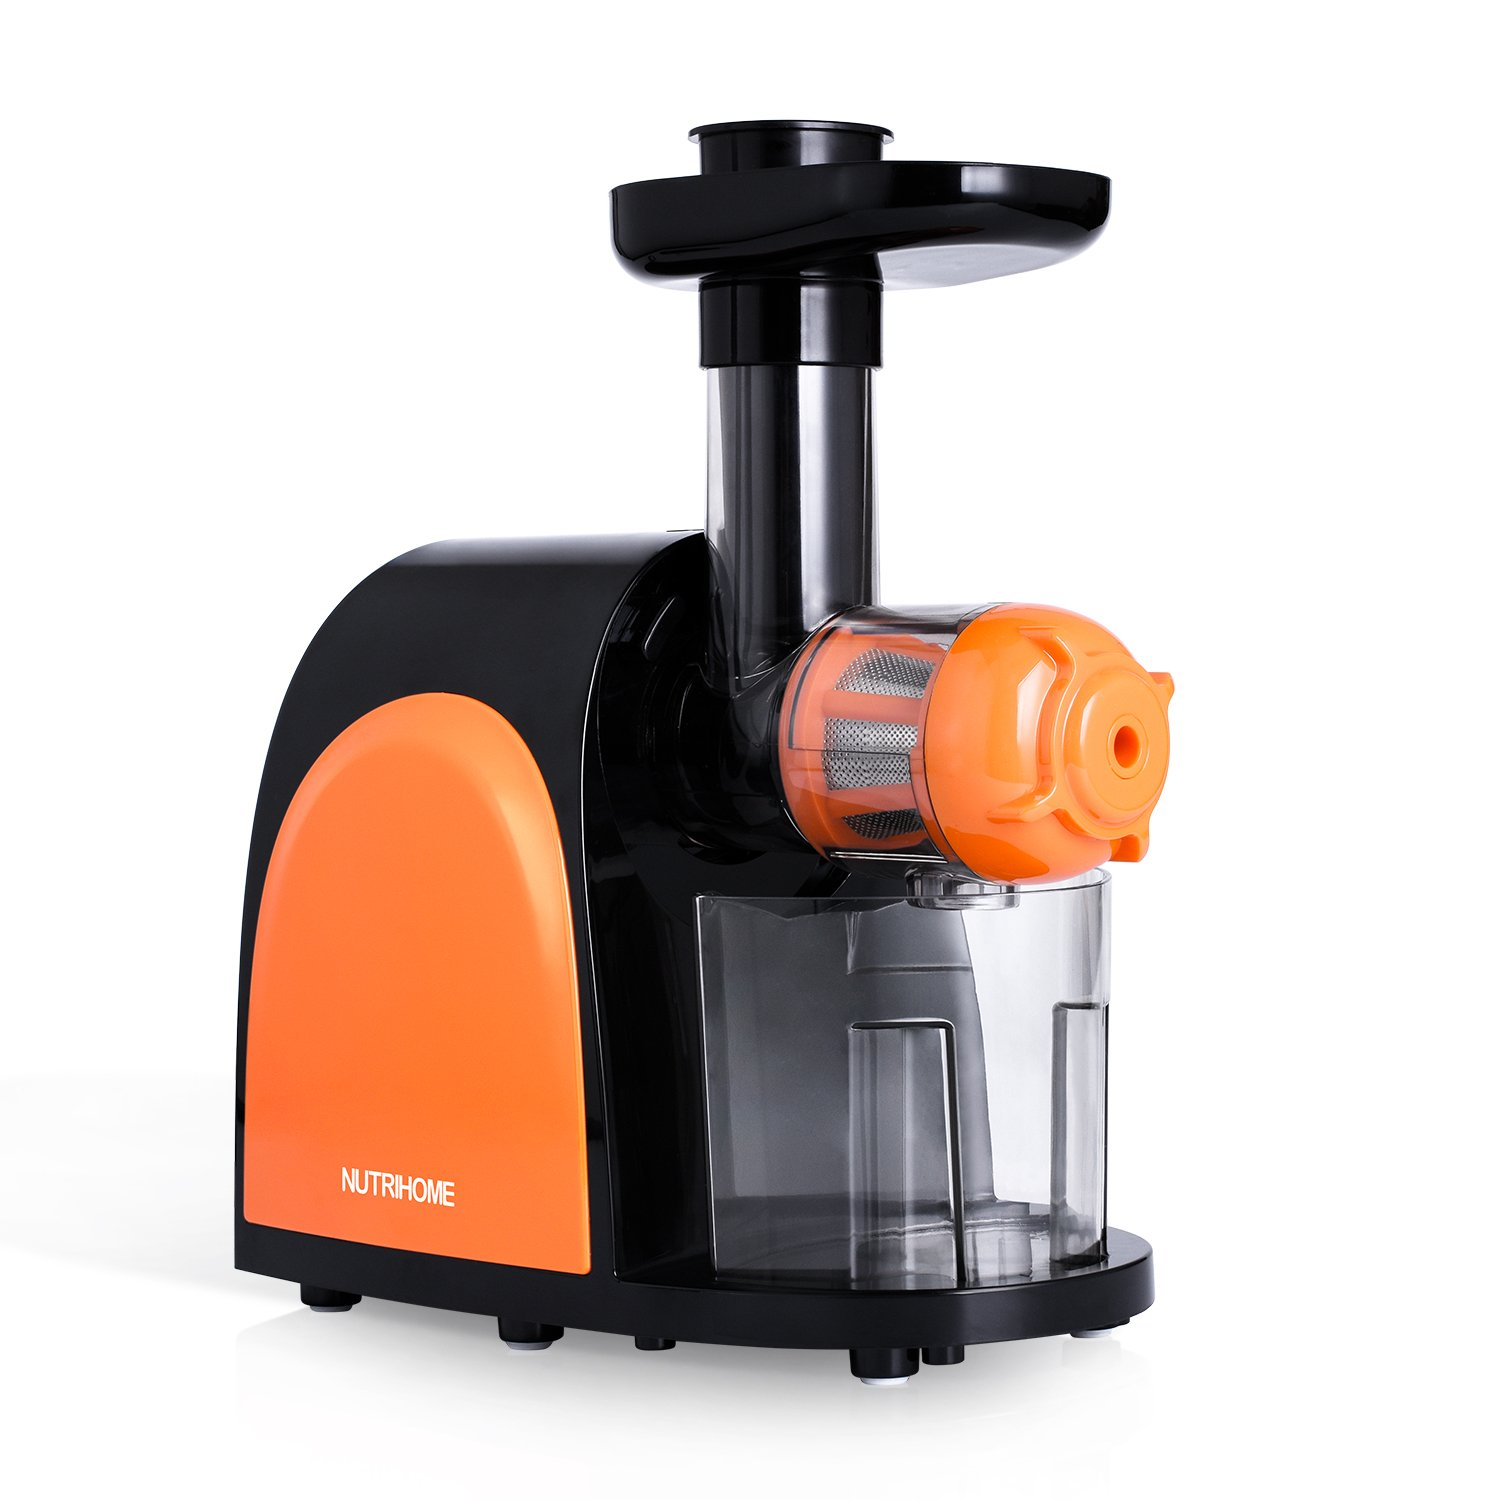 Top Masticating Juicer Reviews : Best Masticating Juicer 2018, Reviews and Buying Guide